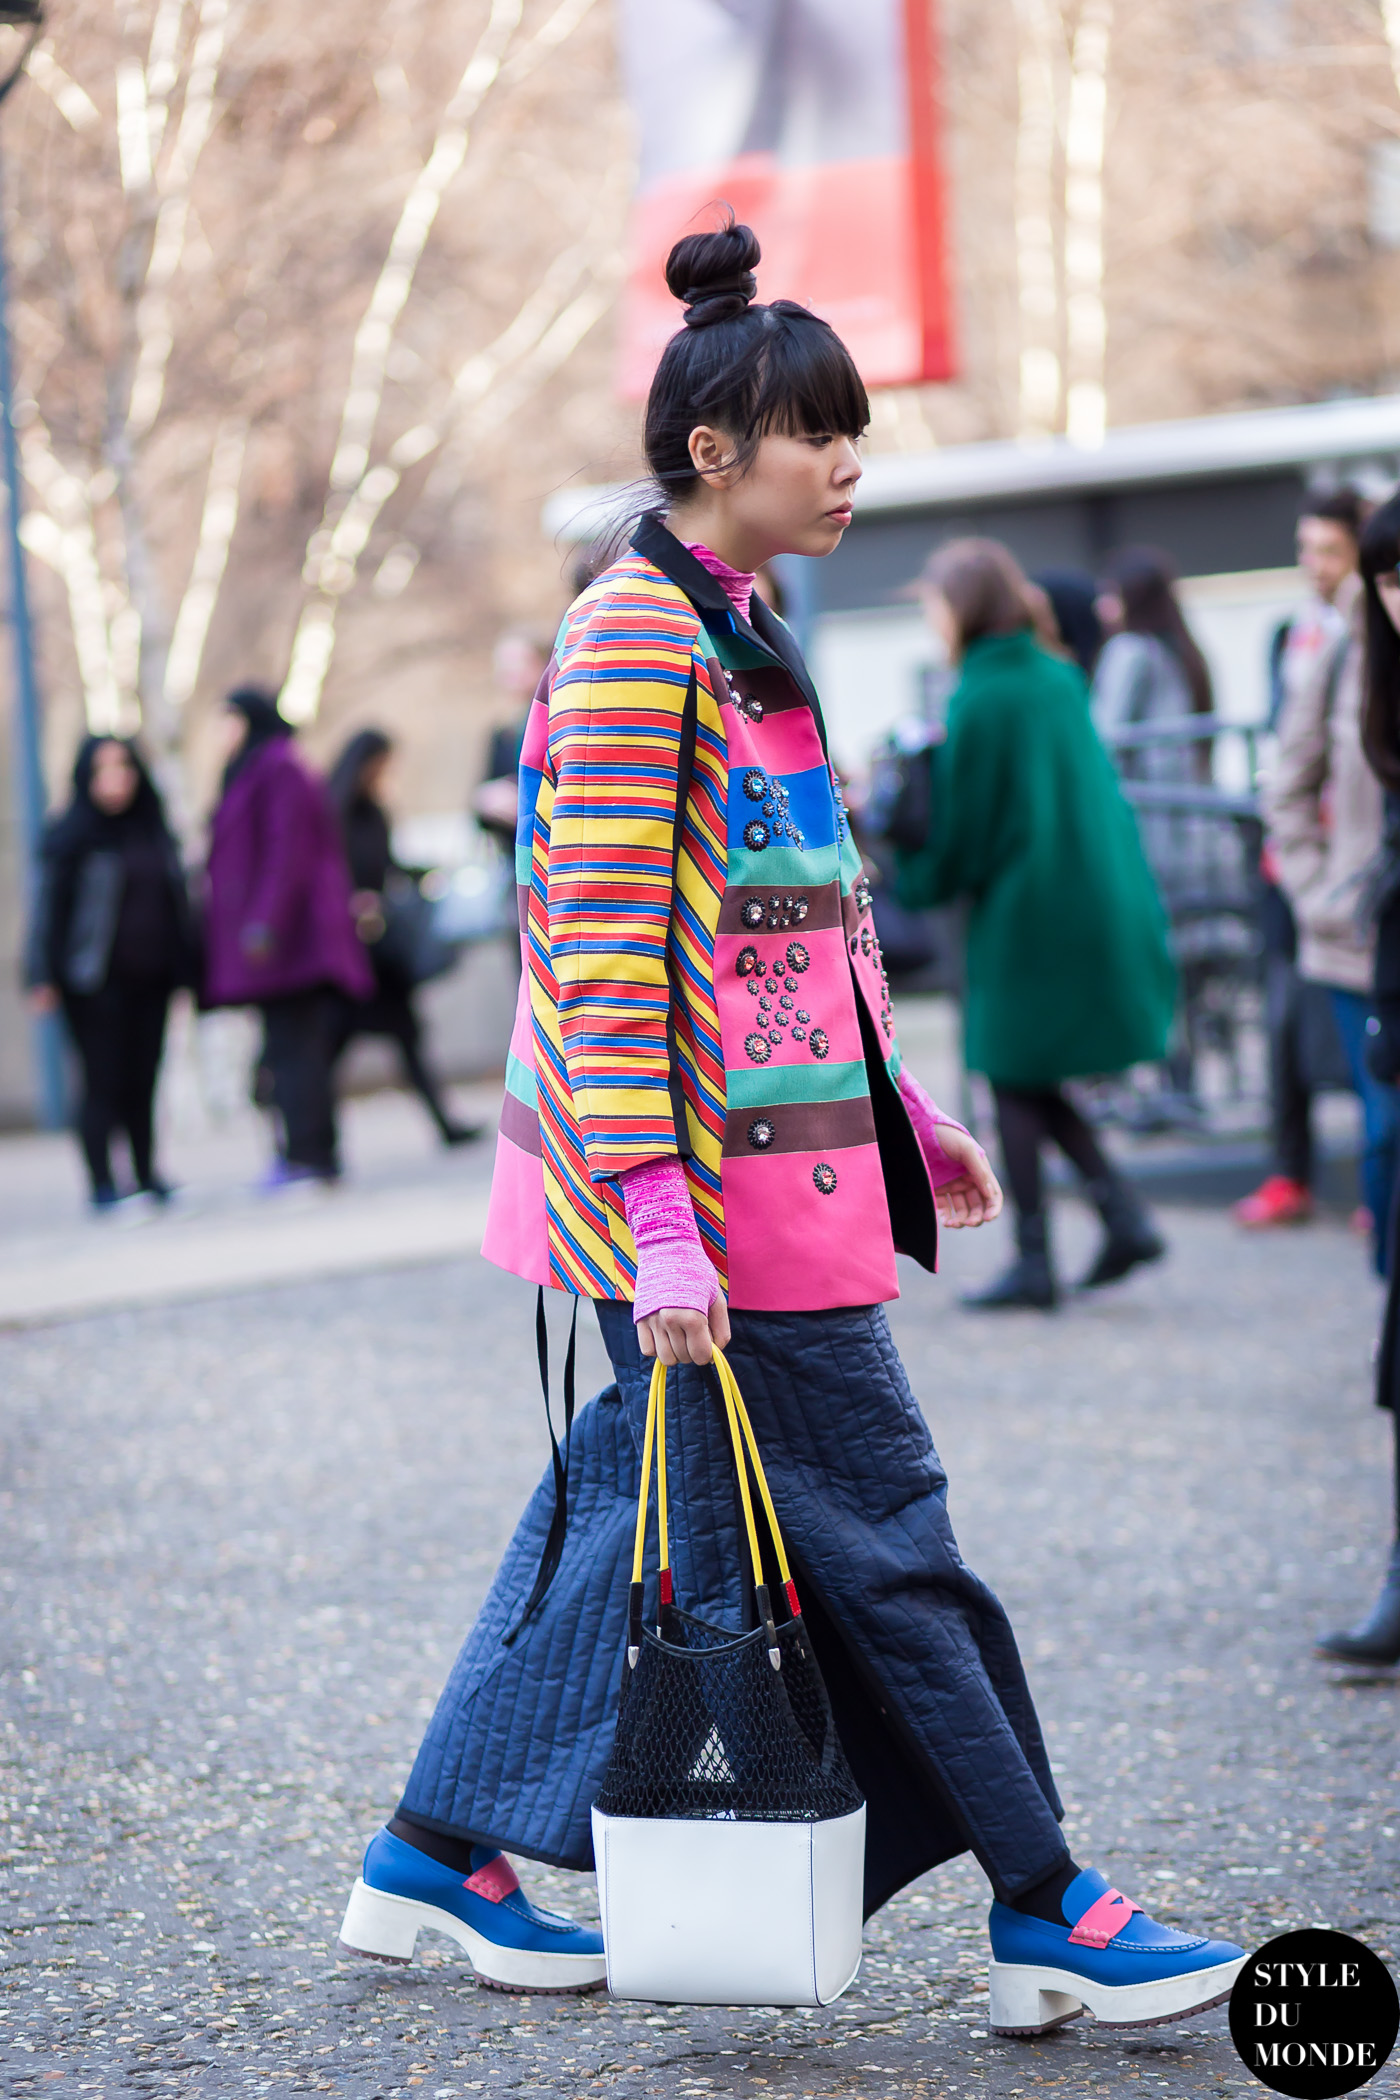 Susie Bubble Susie Lau Style Bubble Street Style Street Fashion Streetsnaps by STYLEDUMONDE Street Style Fashion Blog